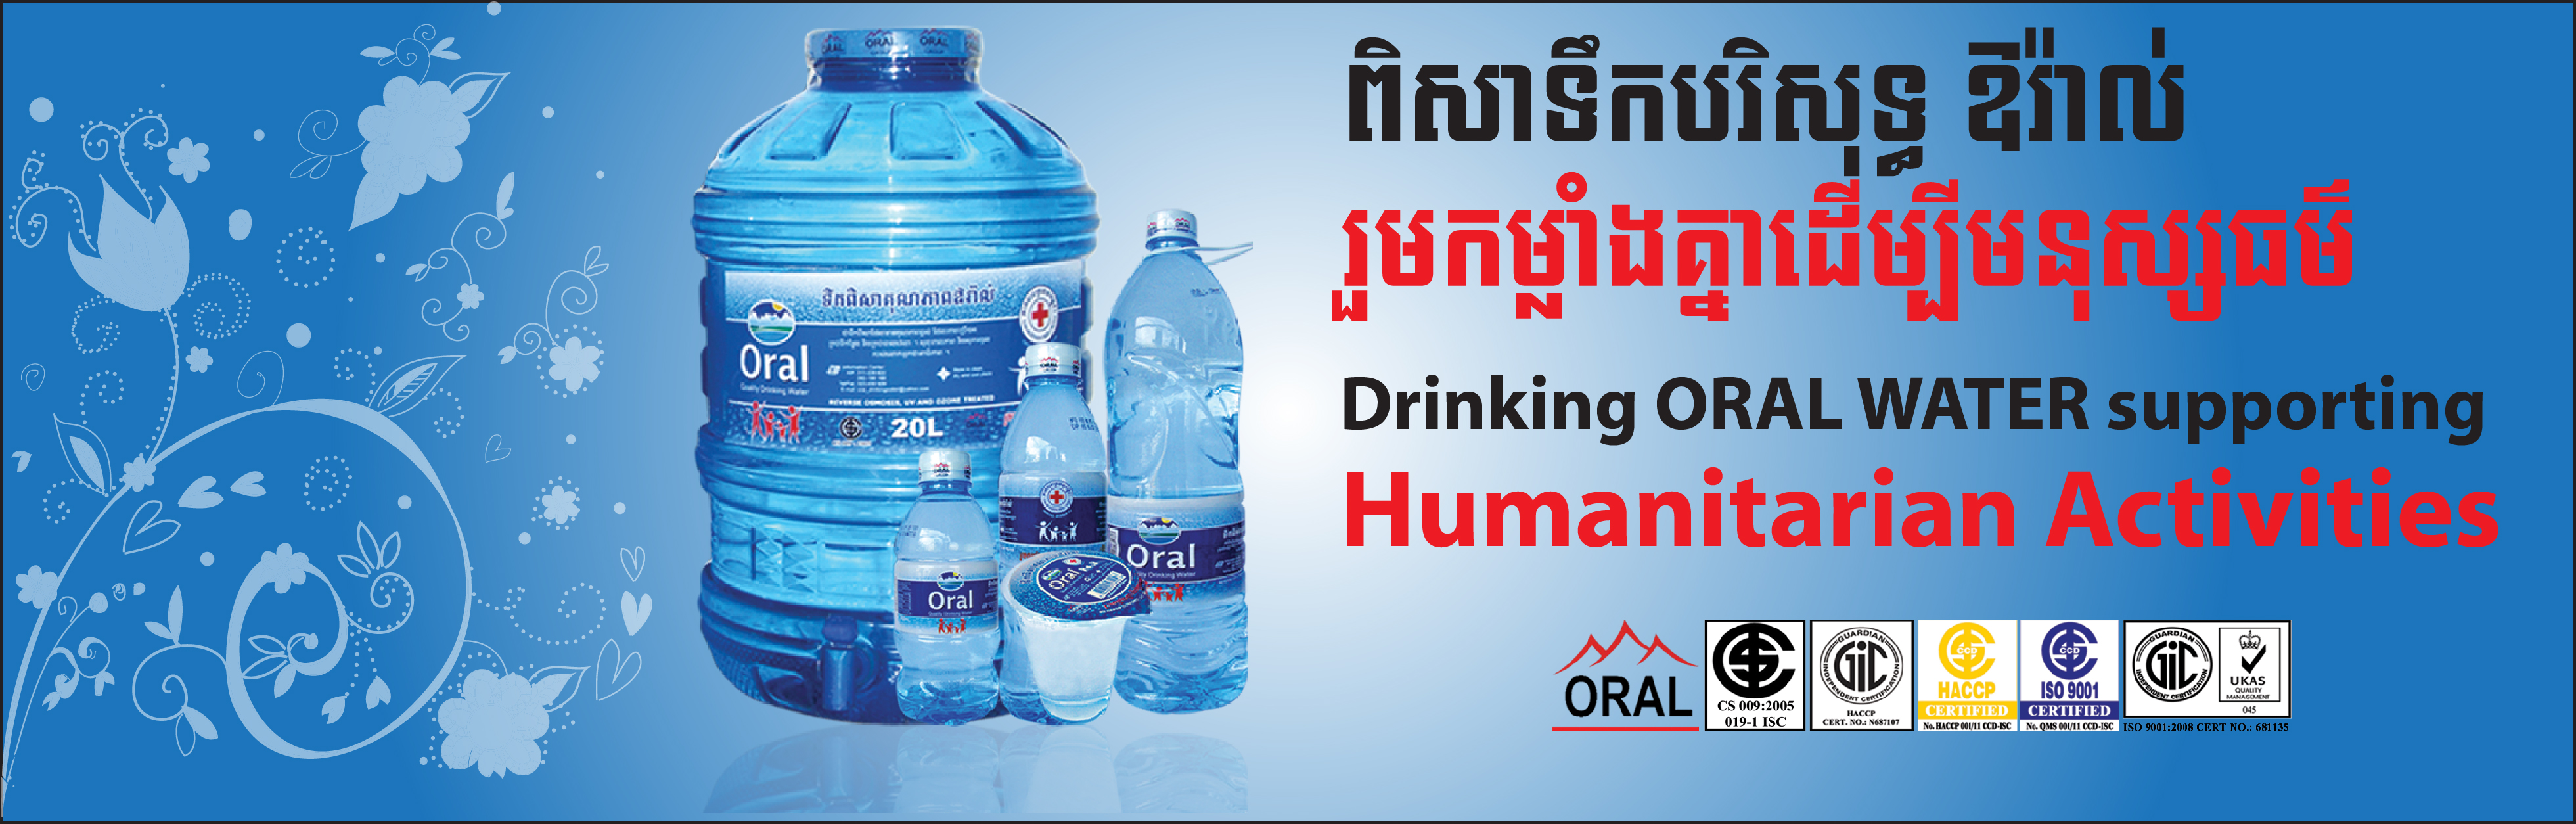 Drinking ORAL WATER supporting humanitarian activities